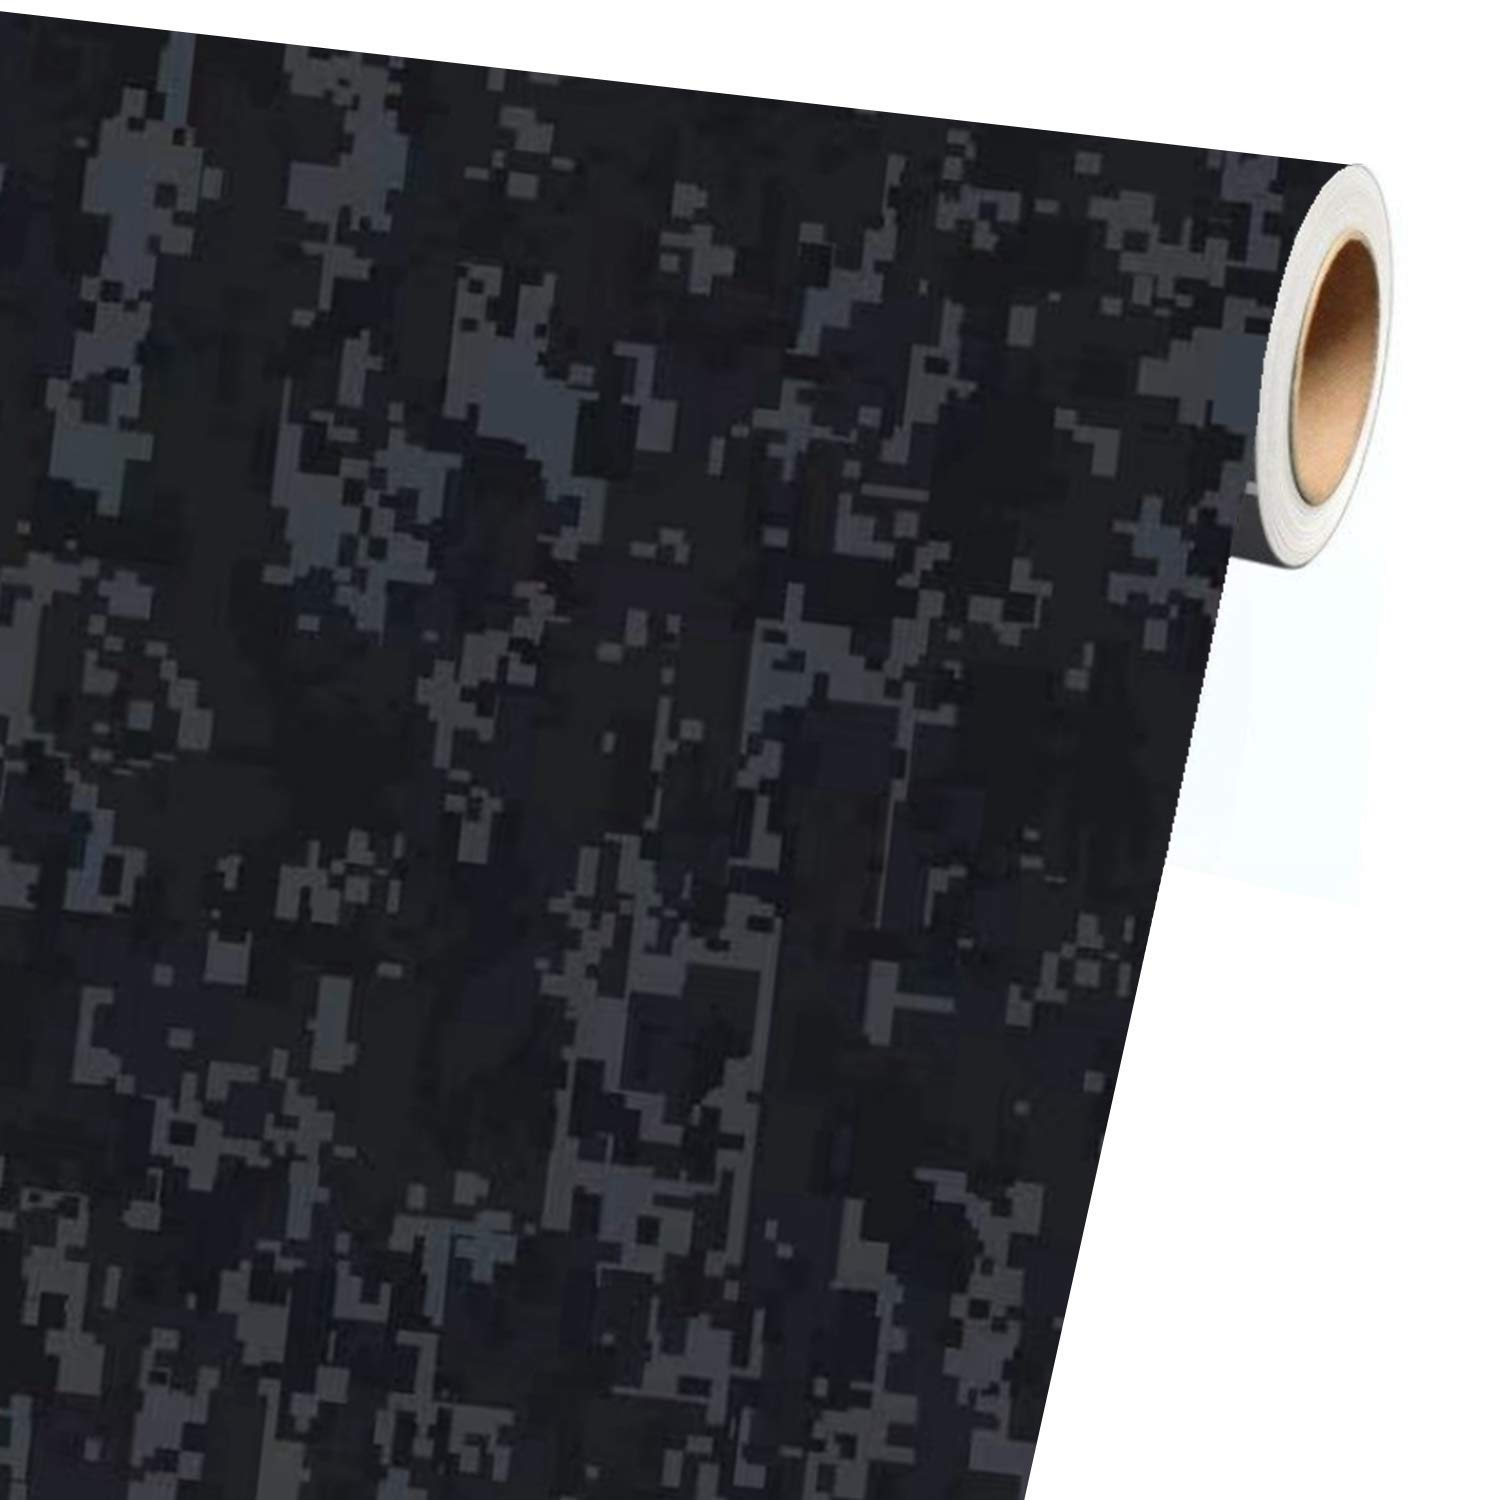 1ft x 5ft, Snow Camo VViViD Vinyl Camouflage Pattern Wrap Air-Release Adhesive Film Sheets